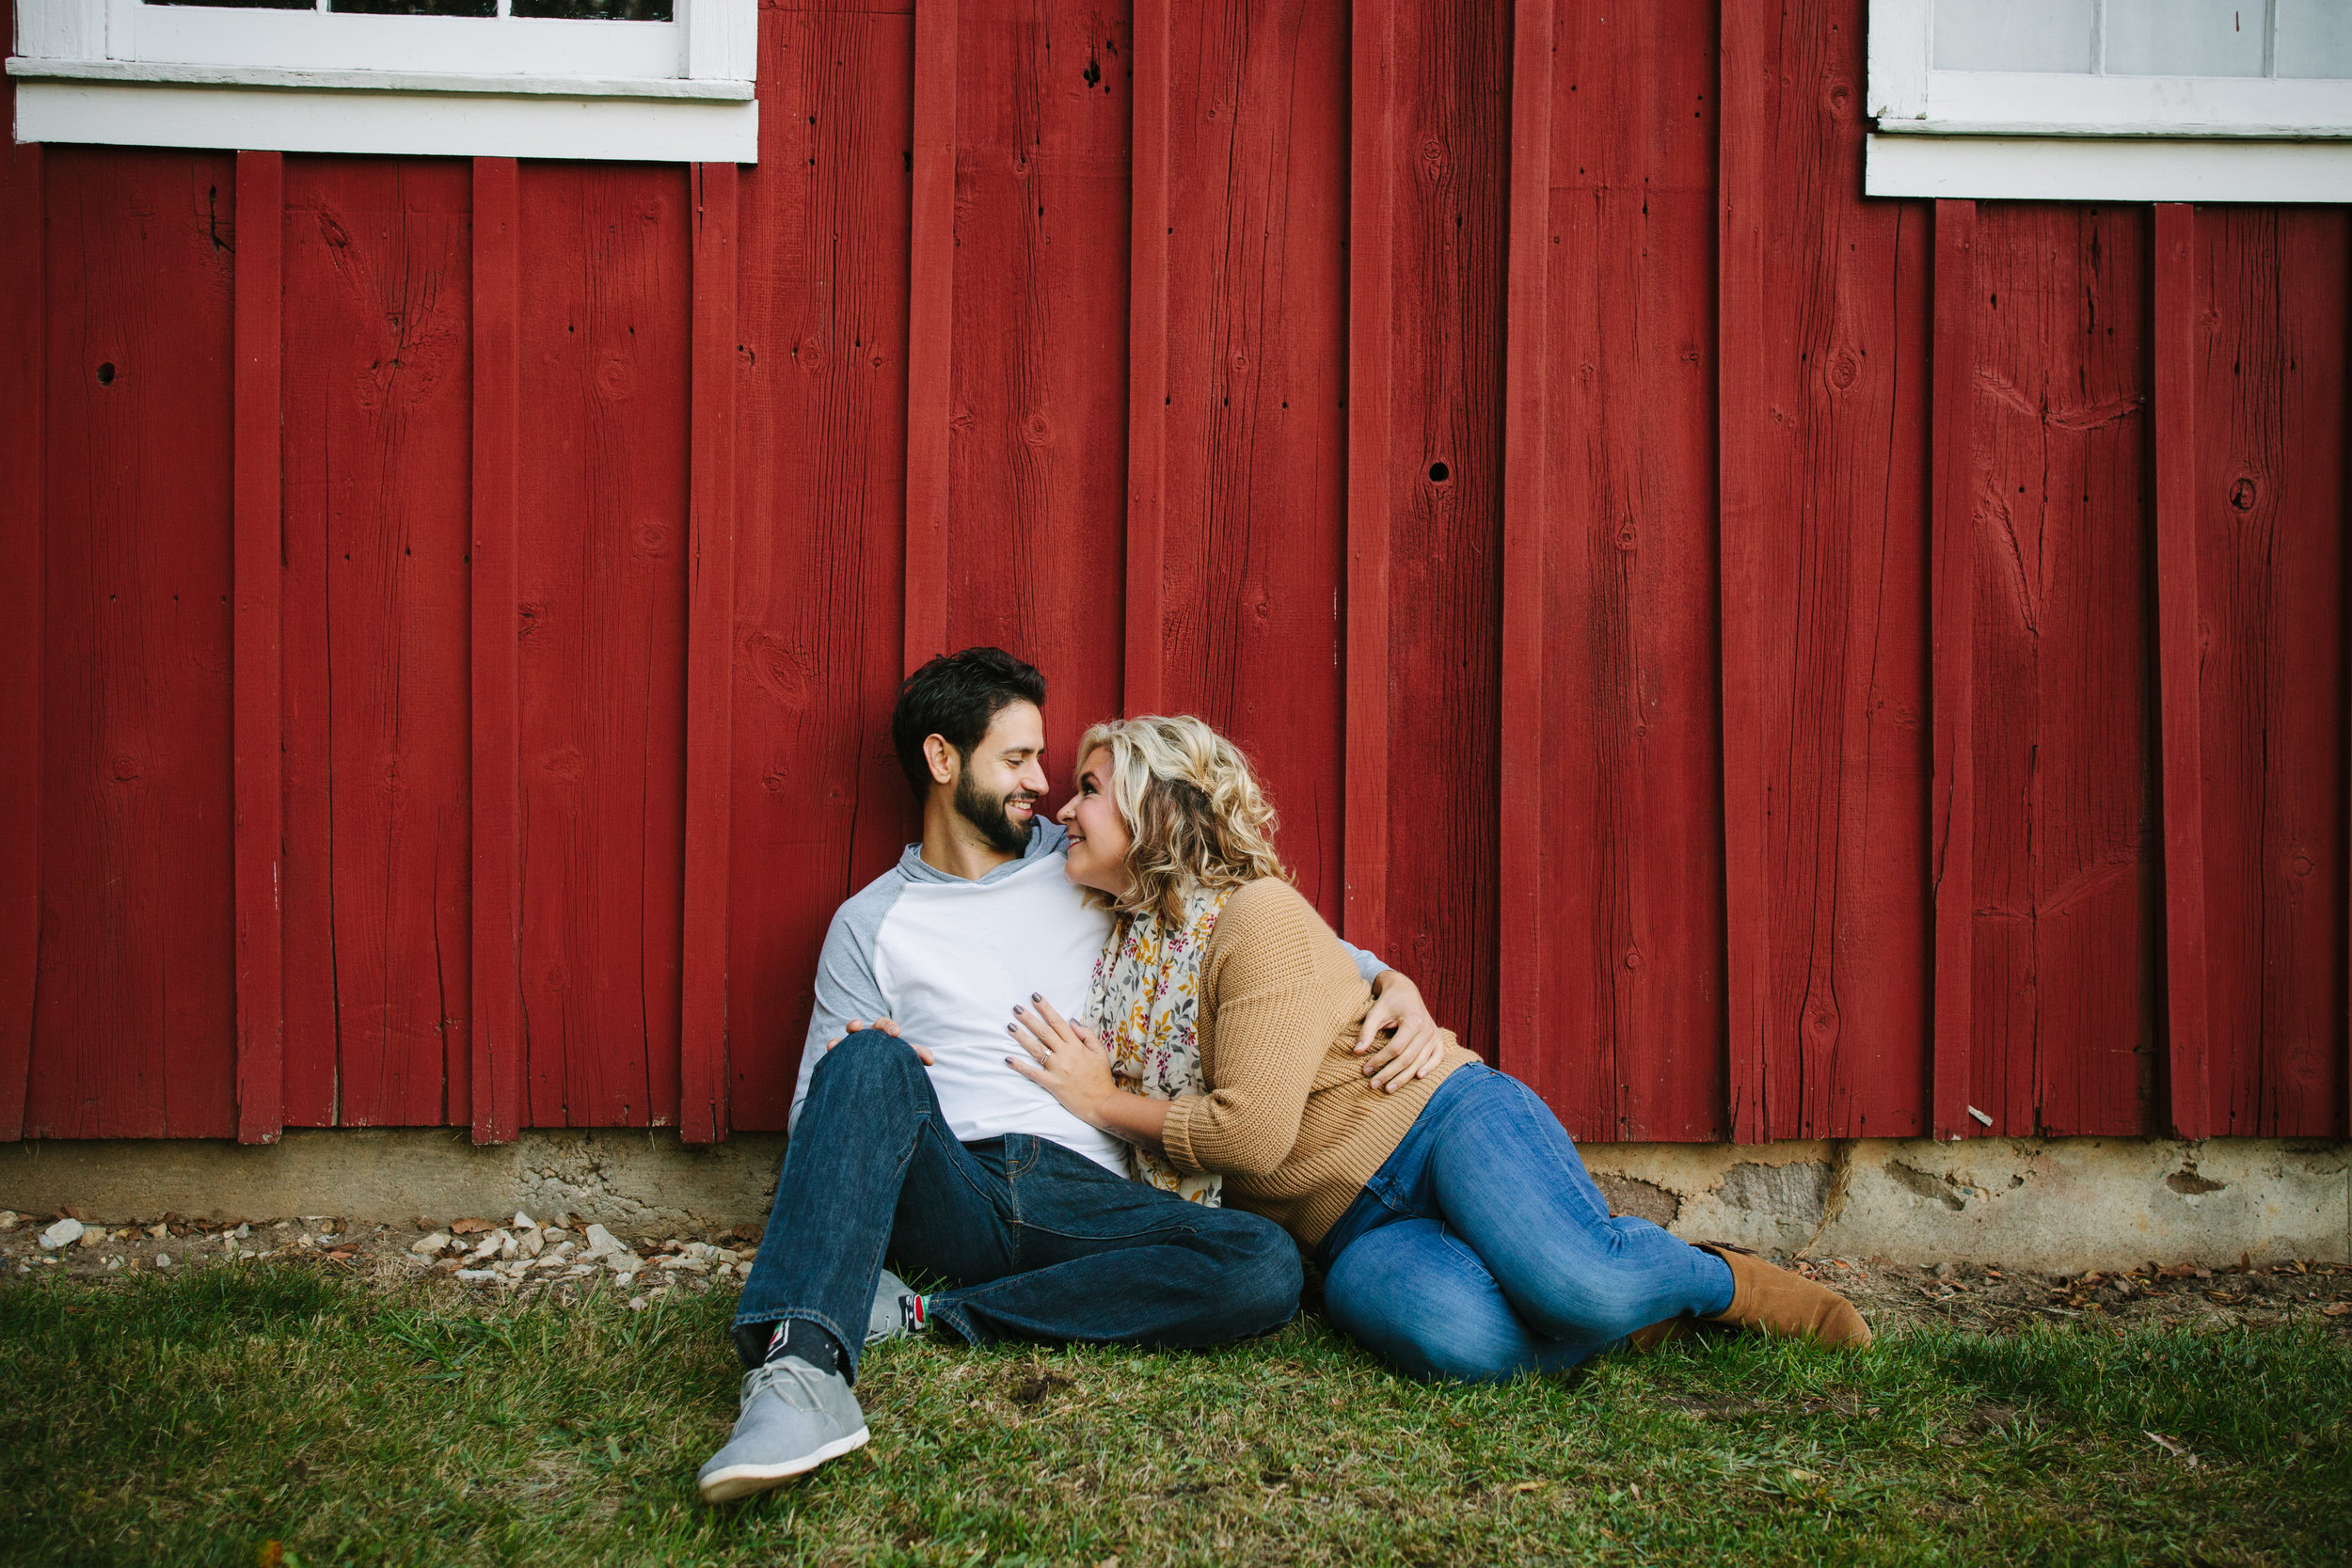 charltonpark_engagementsession_grandrapidsphotographer_grandrapids_hastings_michiganwedding_fallengagement_fallwedding_jdarlingphoto_jessicadarling_westmichiganphotographer_wedding_fall_rusticwedding  005.jpg